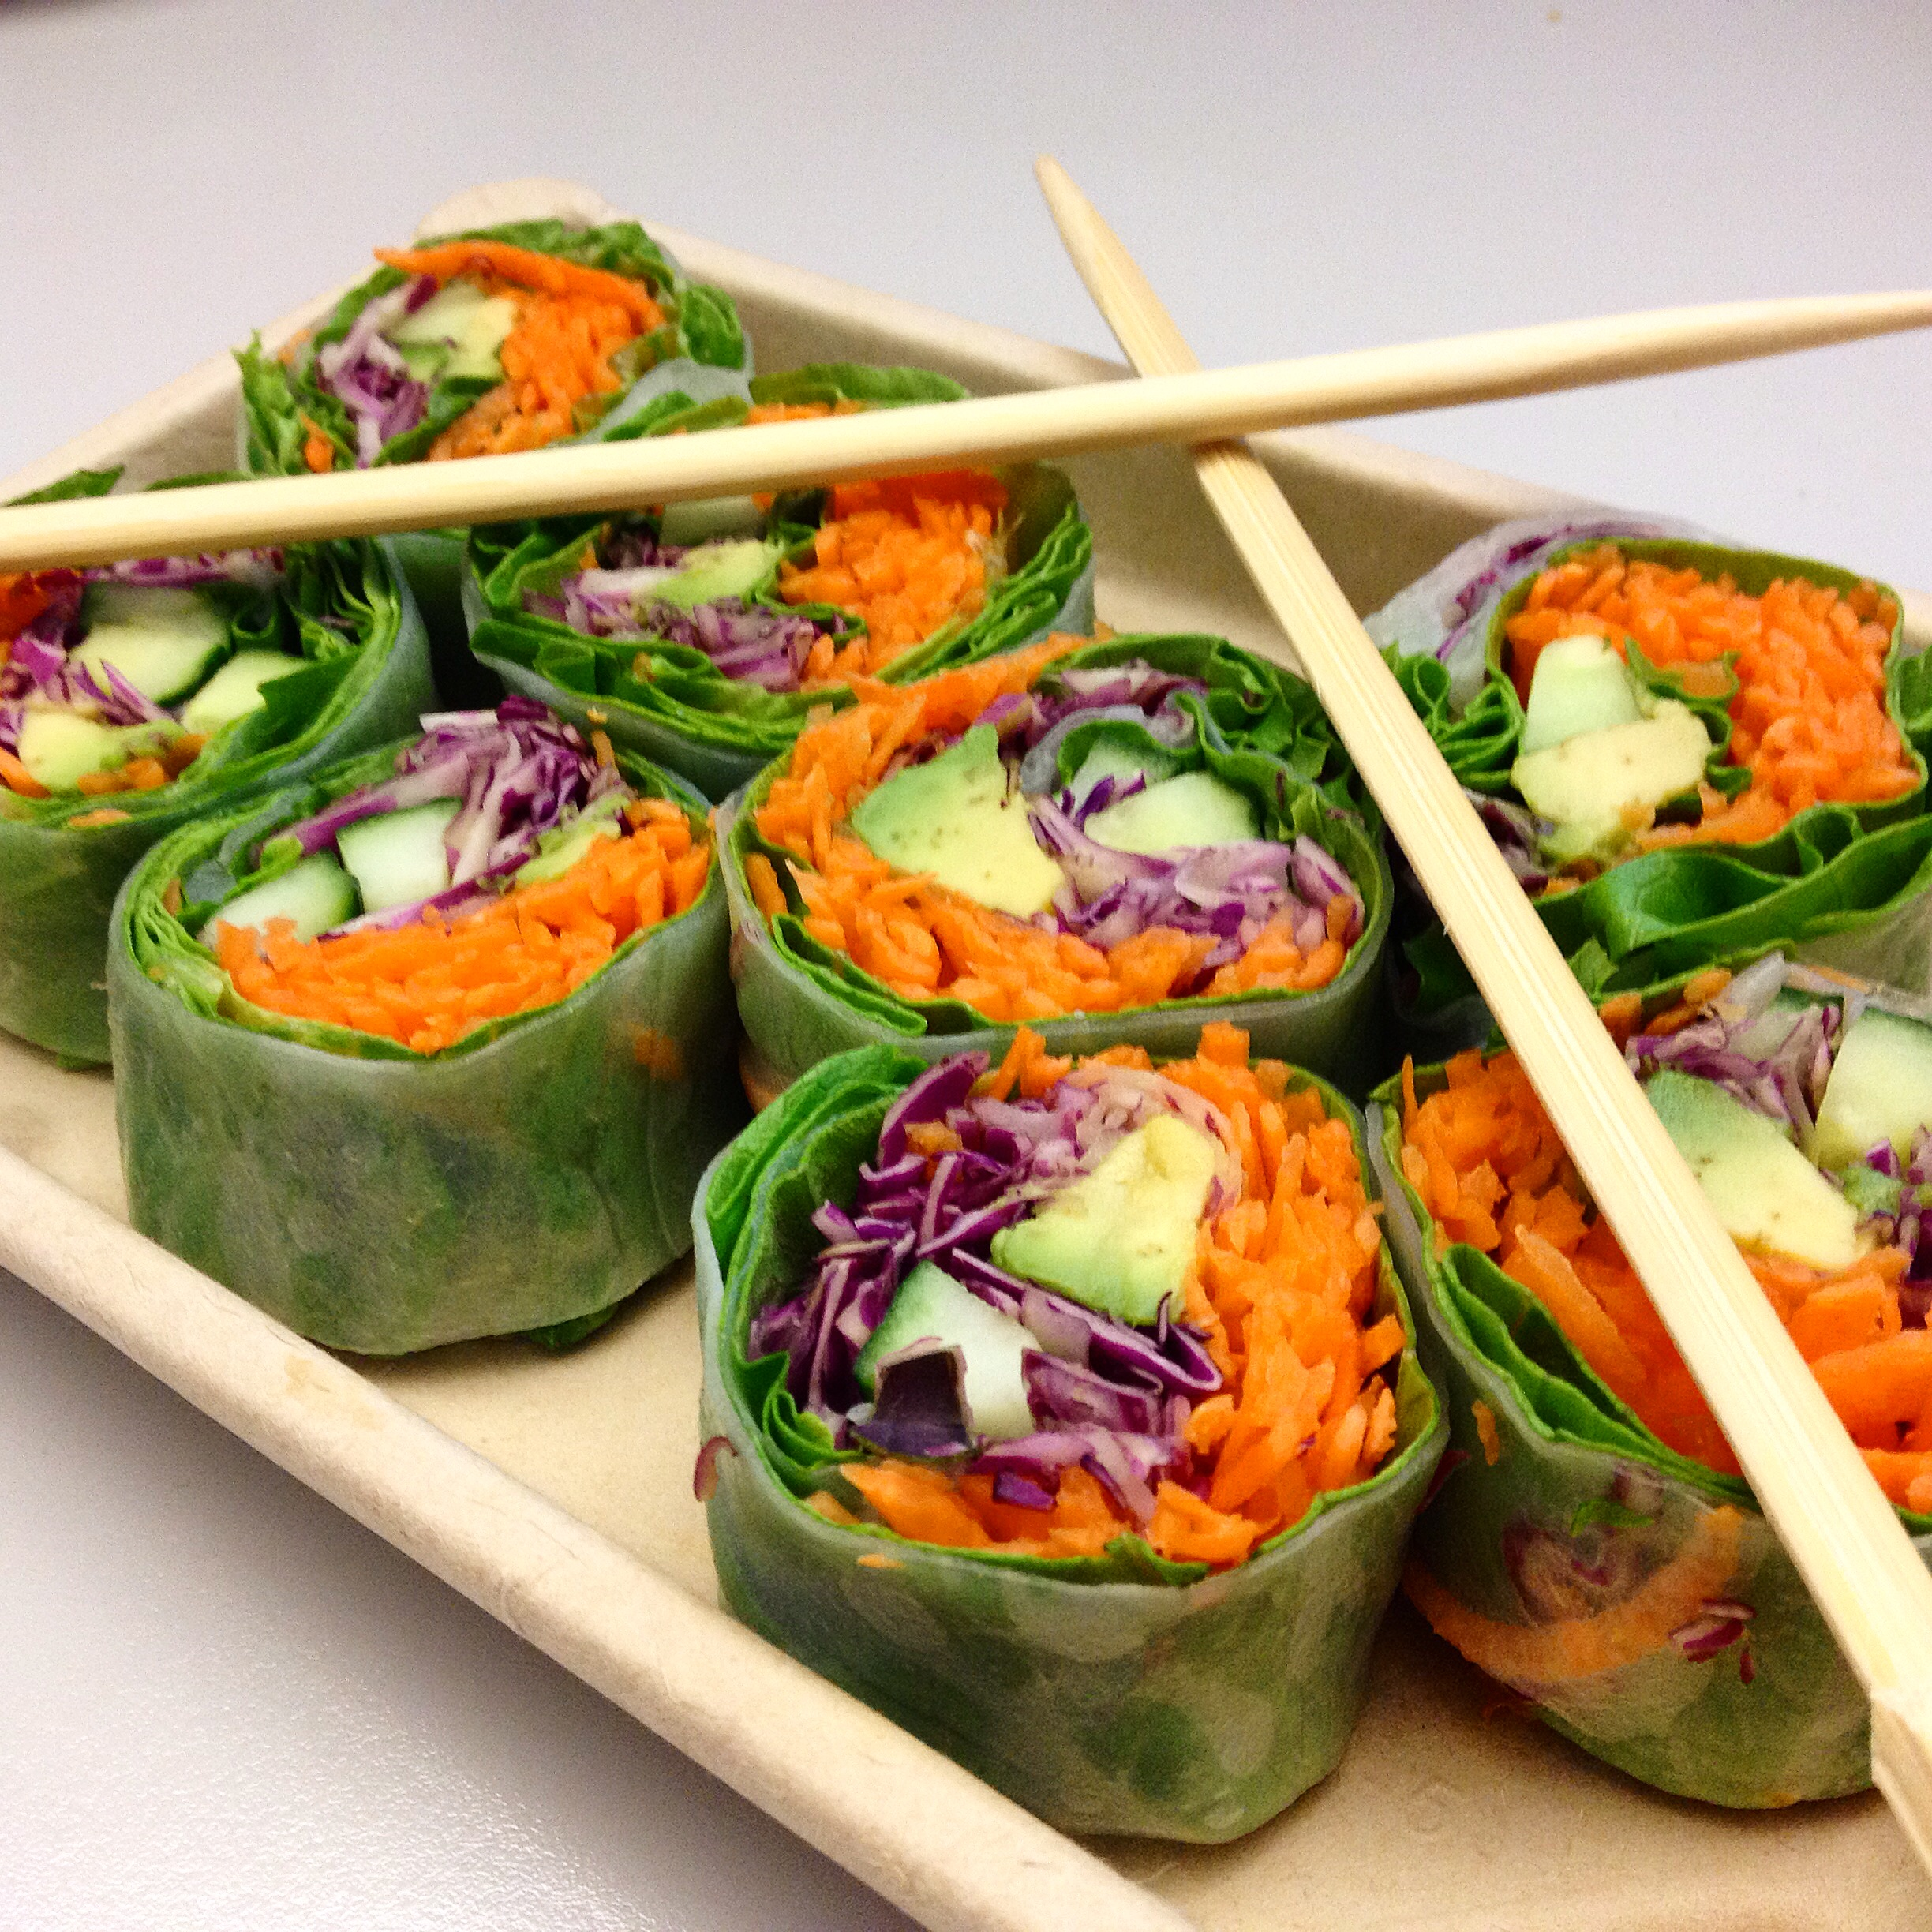 Veggie rolls made of spinach wrap, cabbage, carrots, avocado, cucumber. Place on wrap, roll, slice.